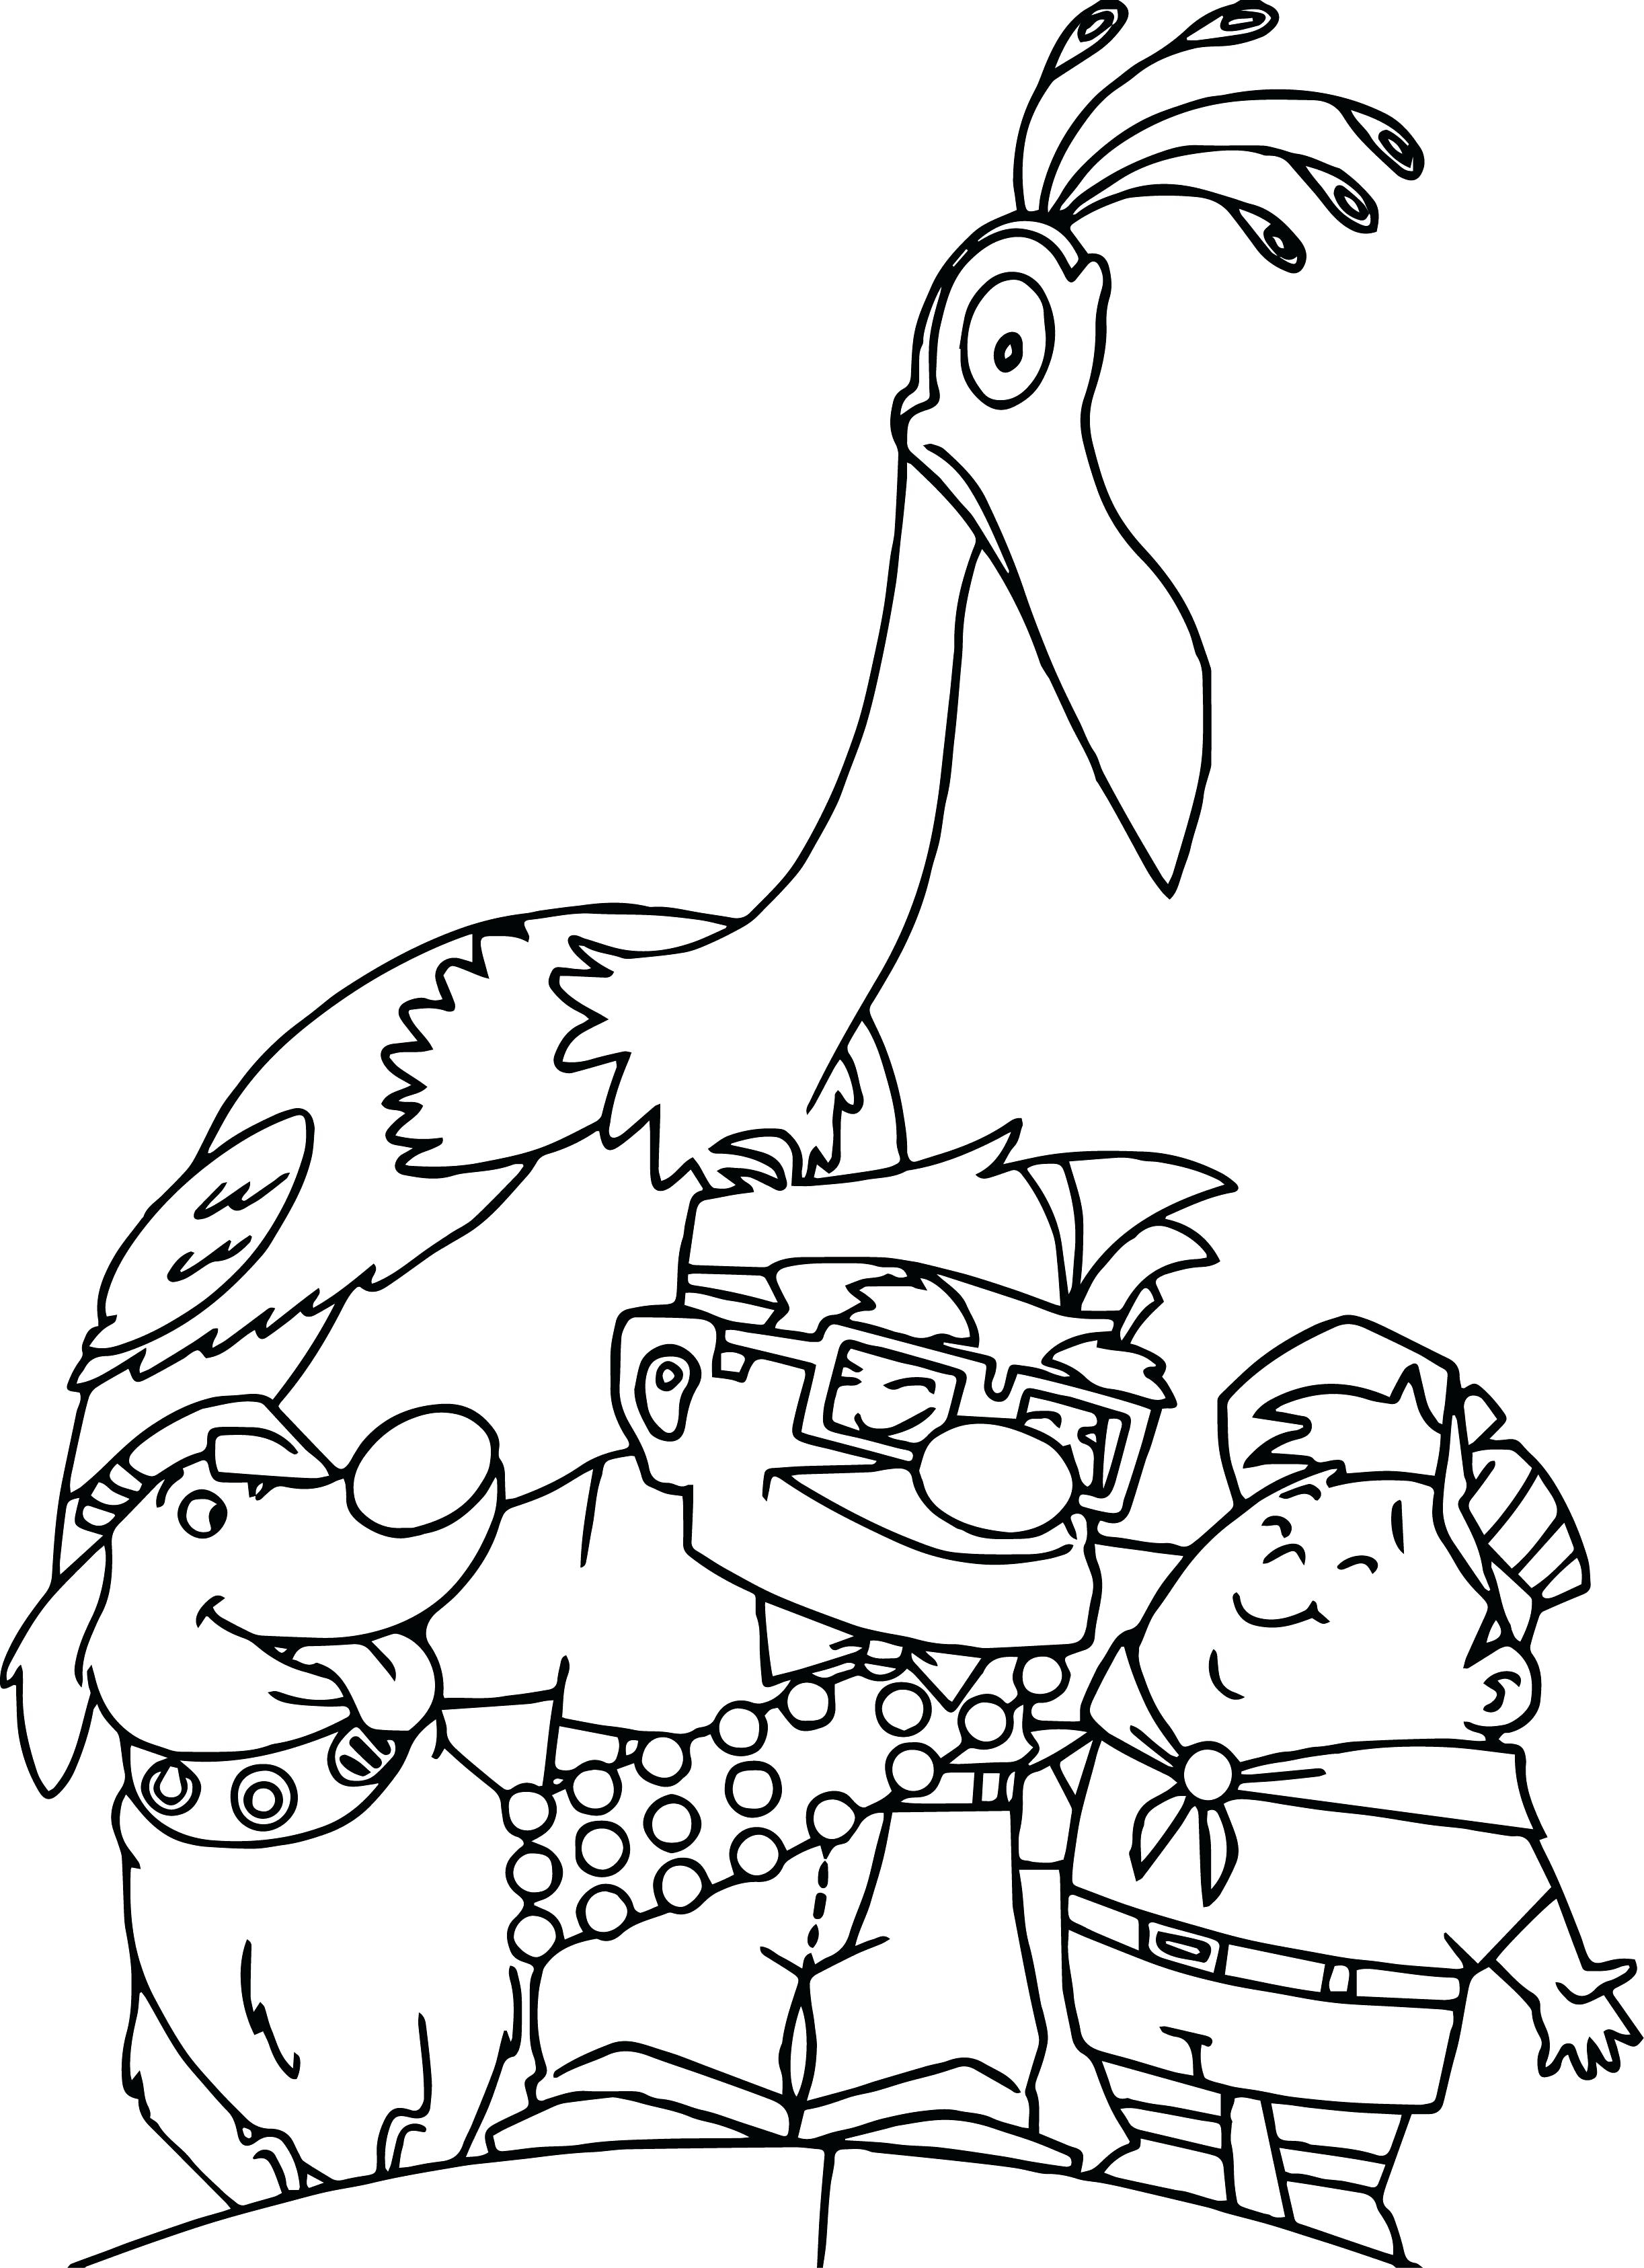 2445x3373 Disney Pixar Up Coloring Pages Carl And Ellie